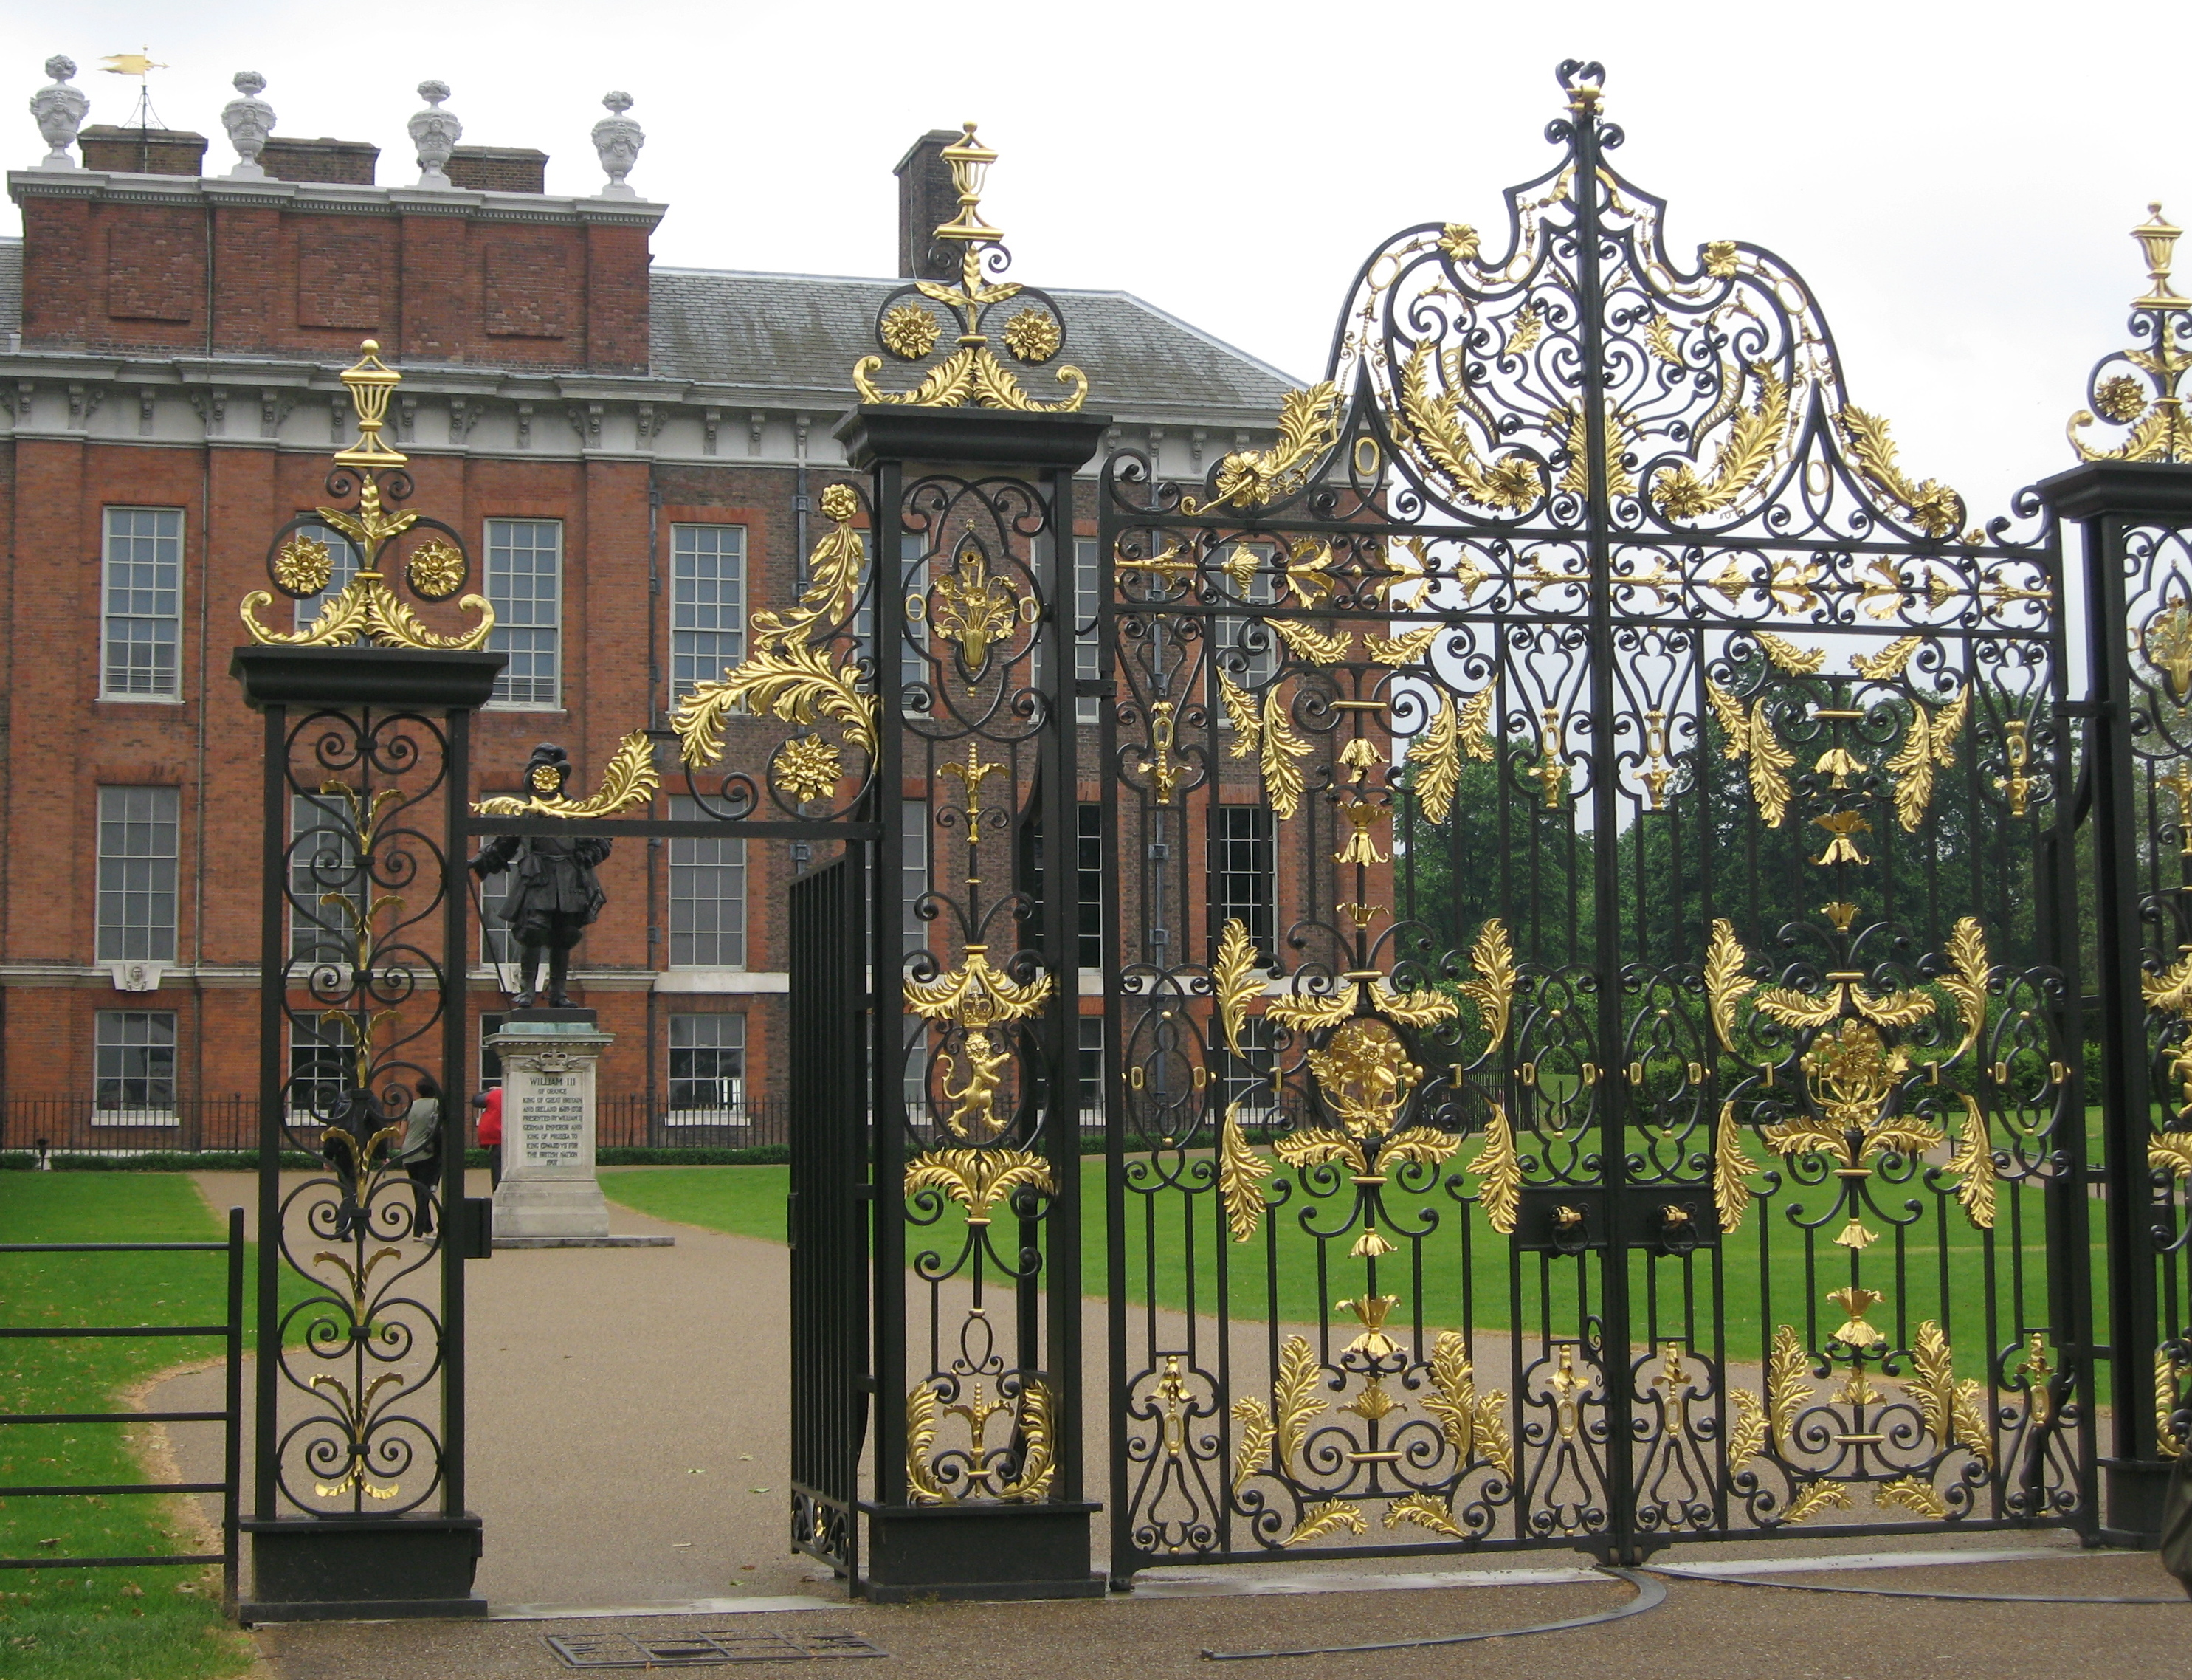 The Gates at Kensington Palace. Photo by me.